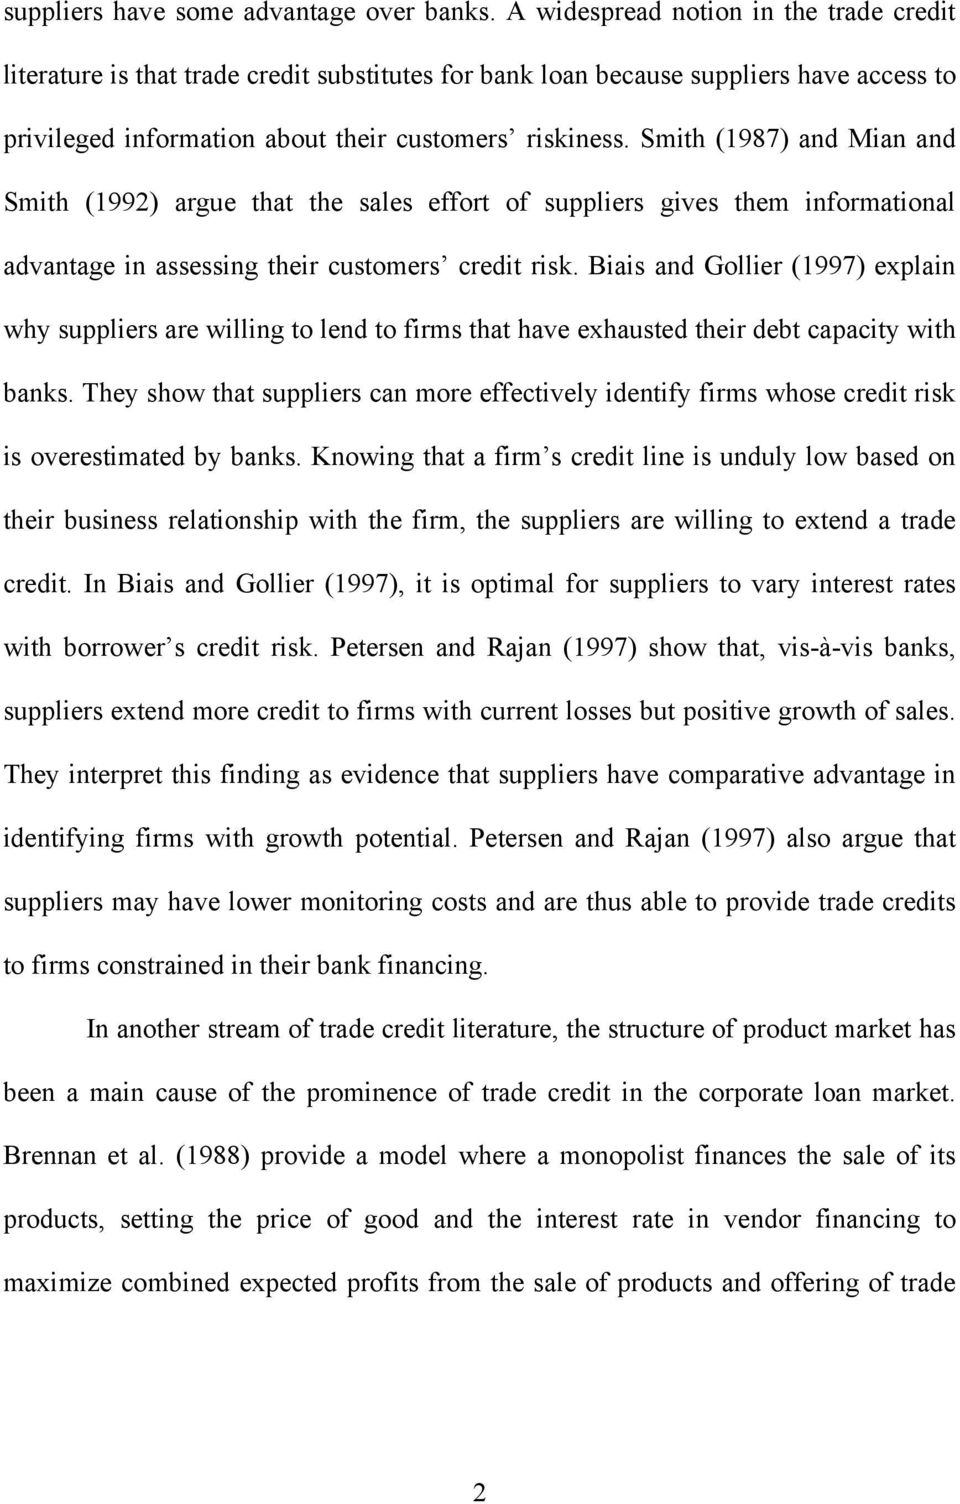 Smith (1987) and Mian and Smith (1992) argue that the sales effort of suppliers gives them informational advantage in assessing their customers credit risk.